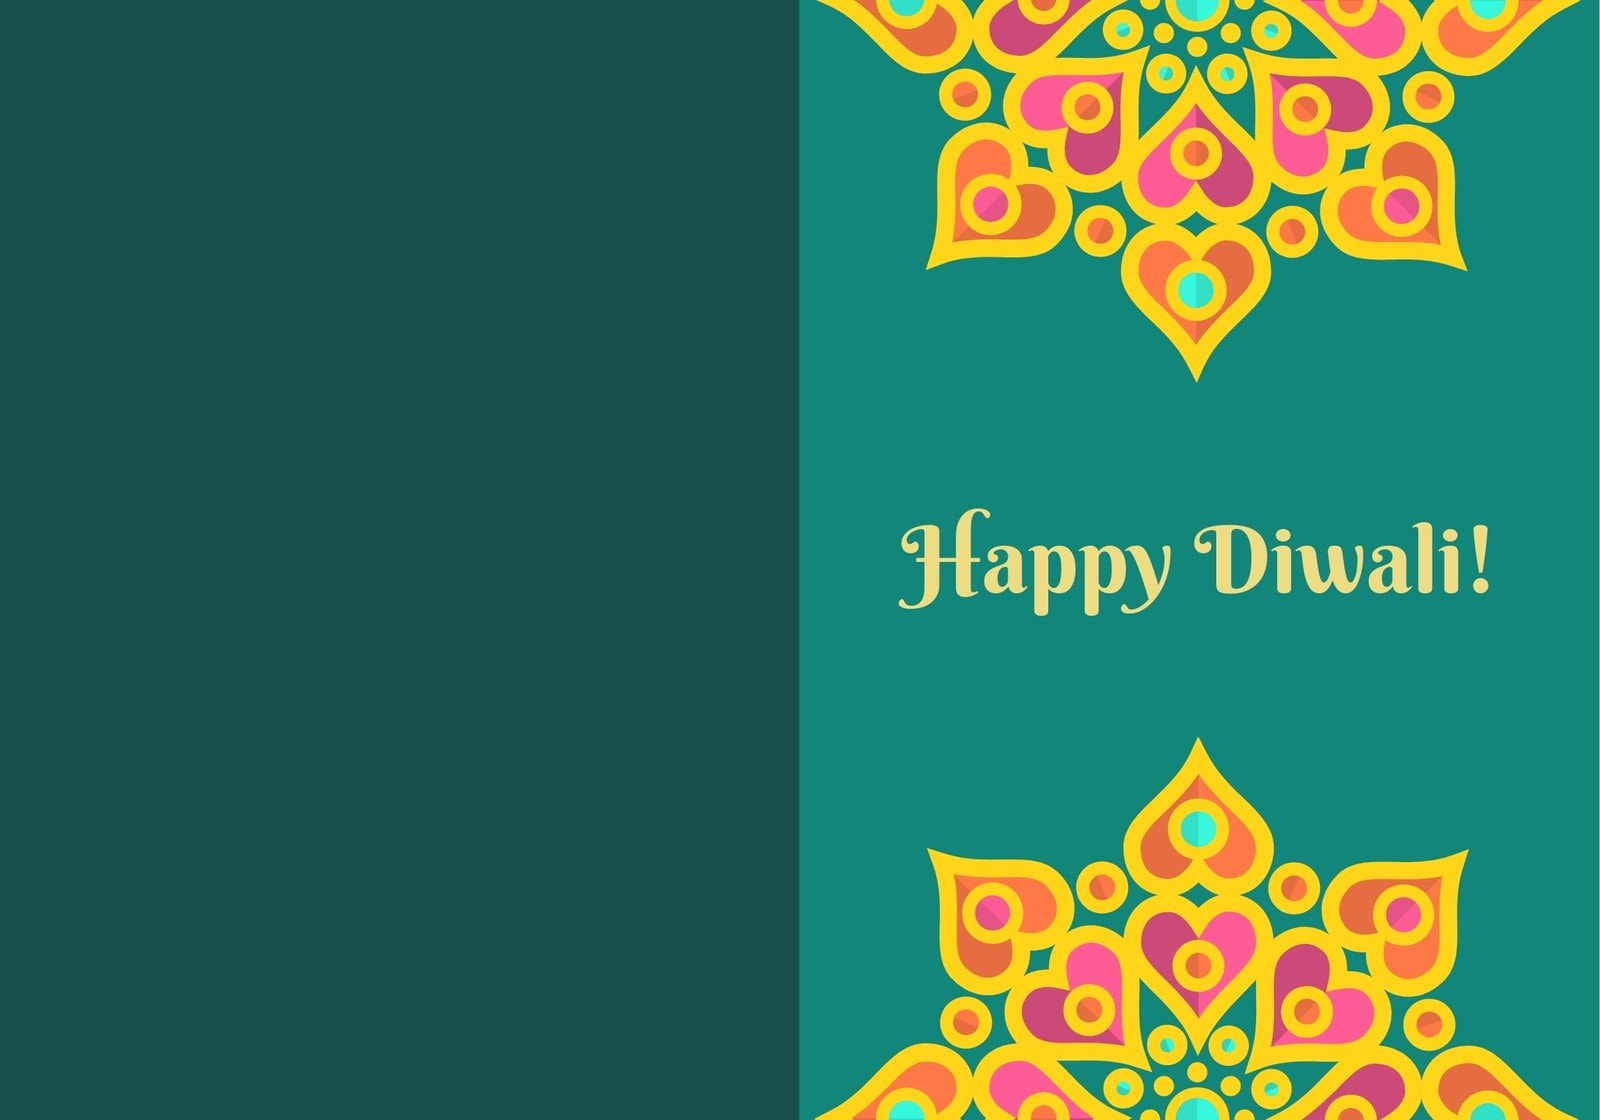 Orange Yellow and Teal Diwali Festival Greetings Folded Card